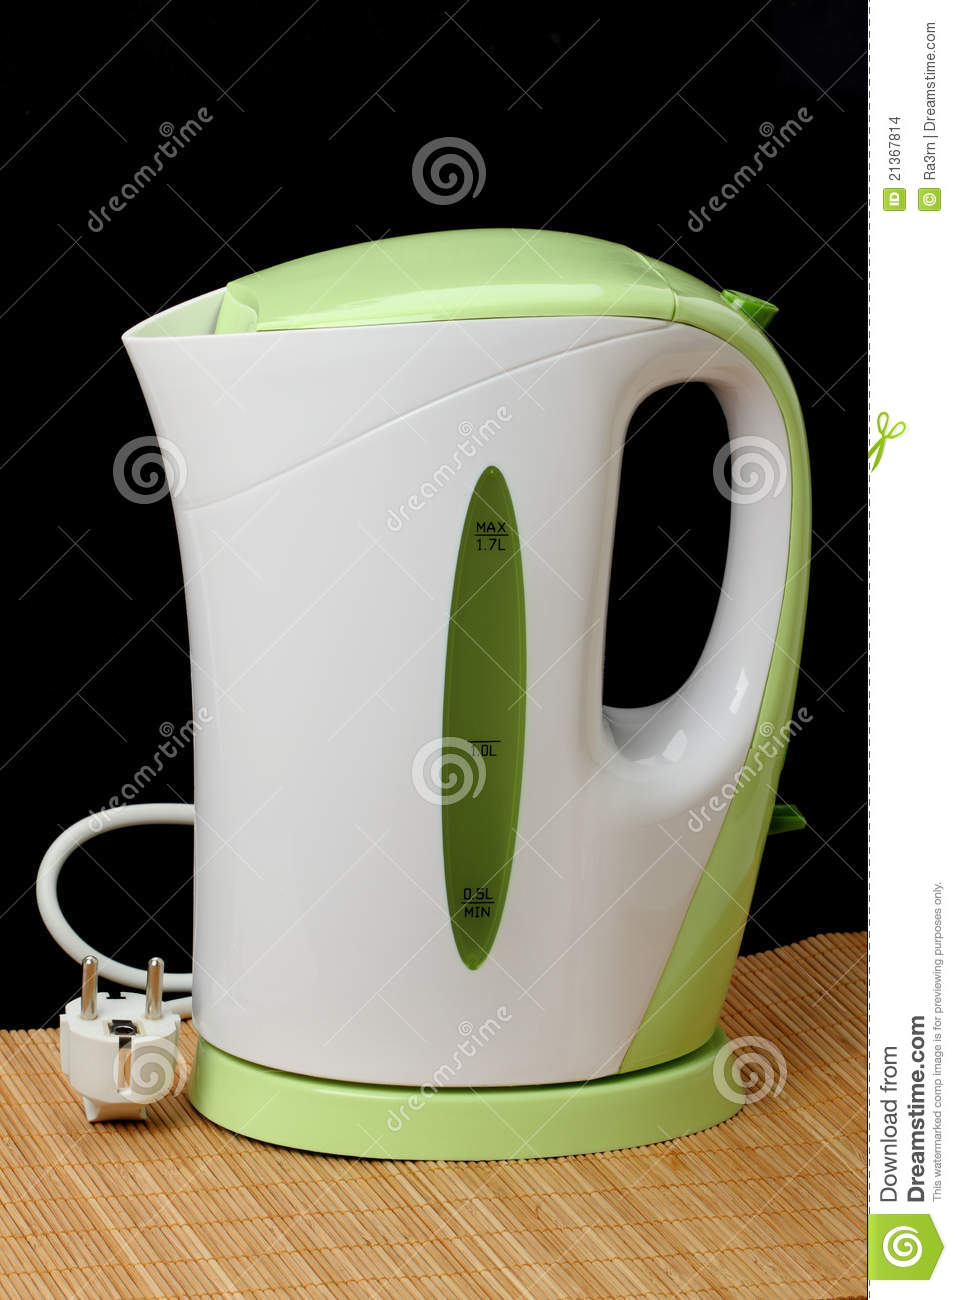 Electric kettle on black